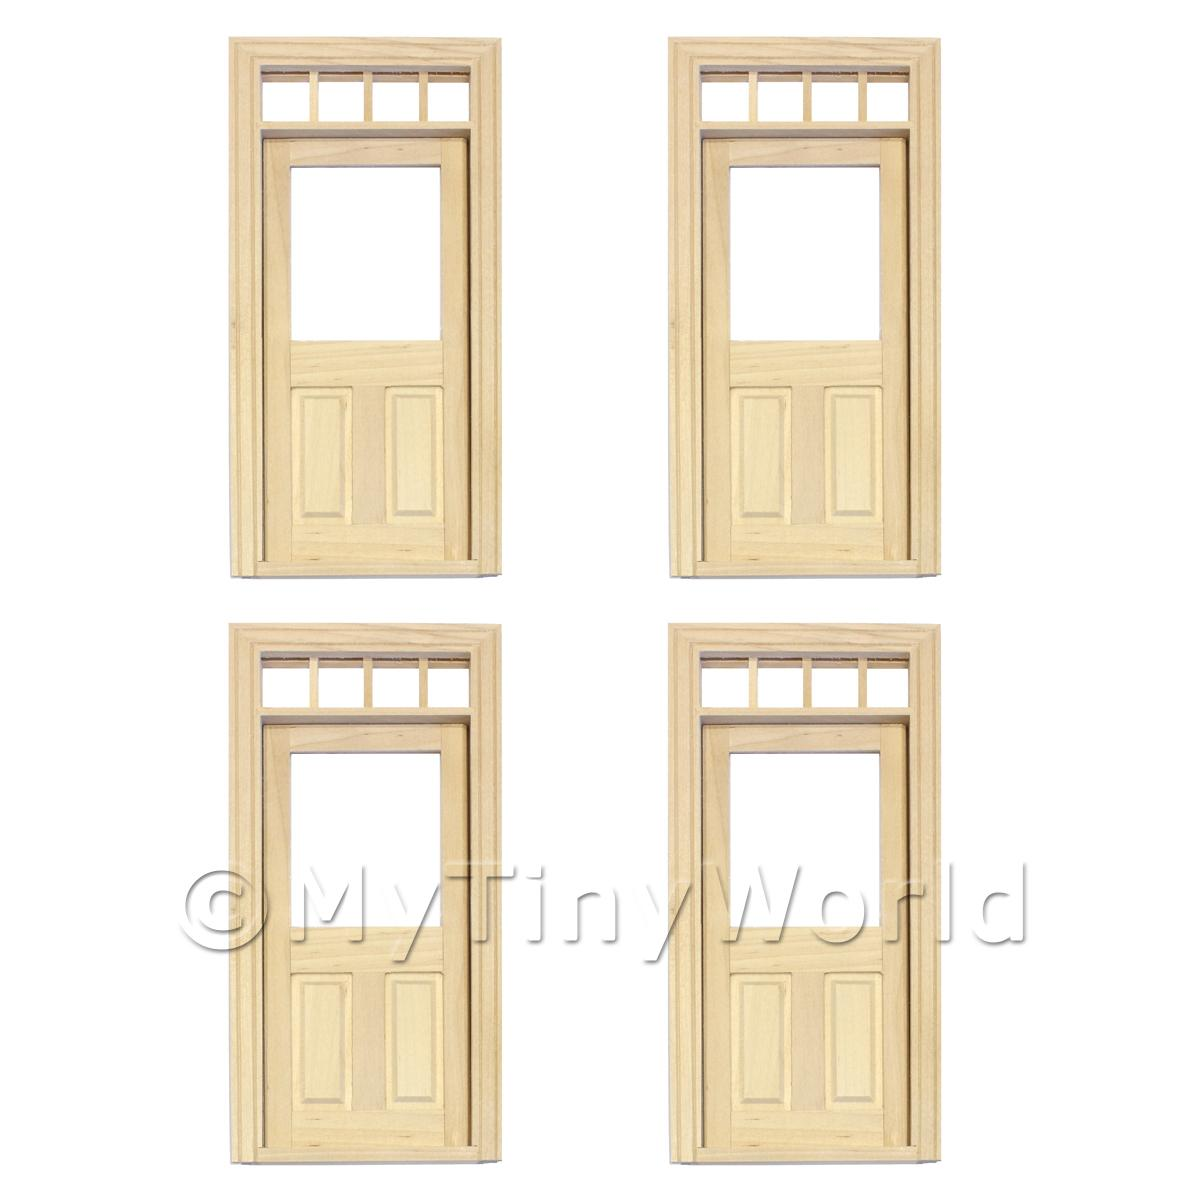 4 x Dolls House Decorative Wood Door With Glazed Pane And 4 Open Panes